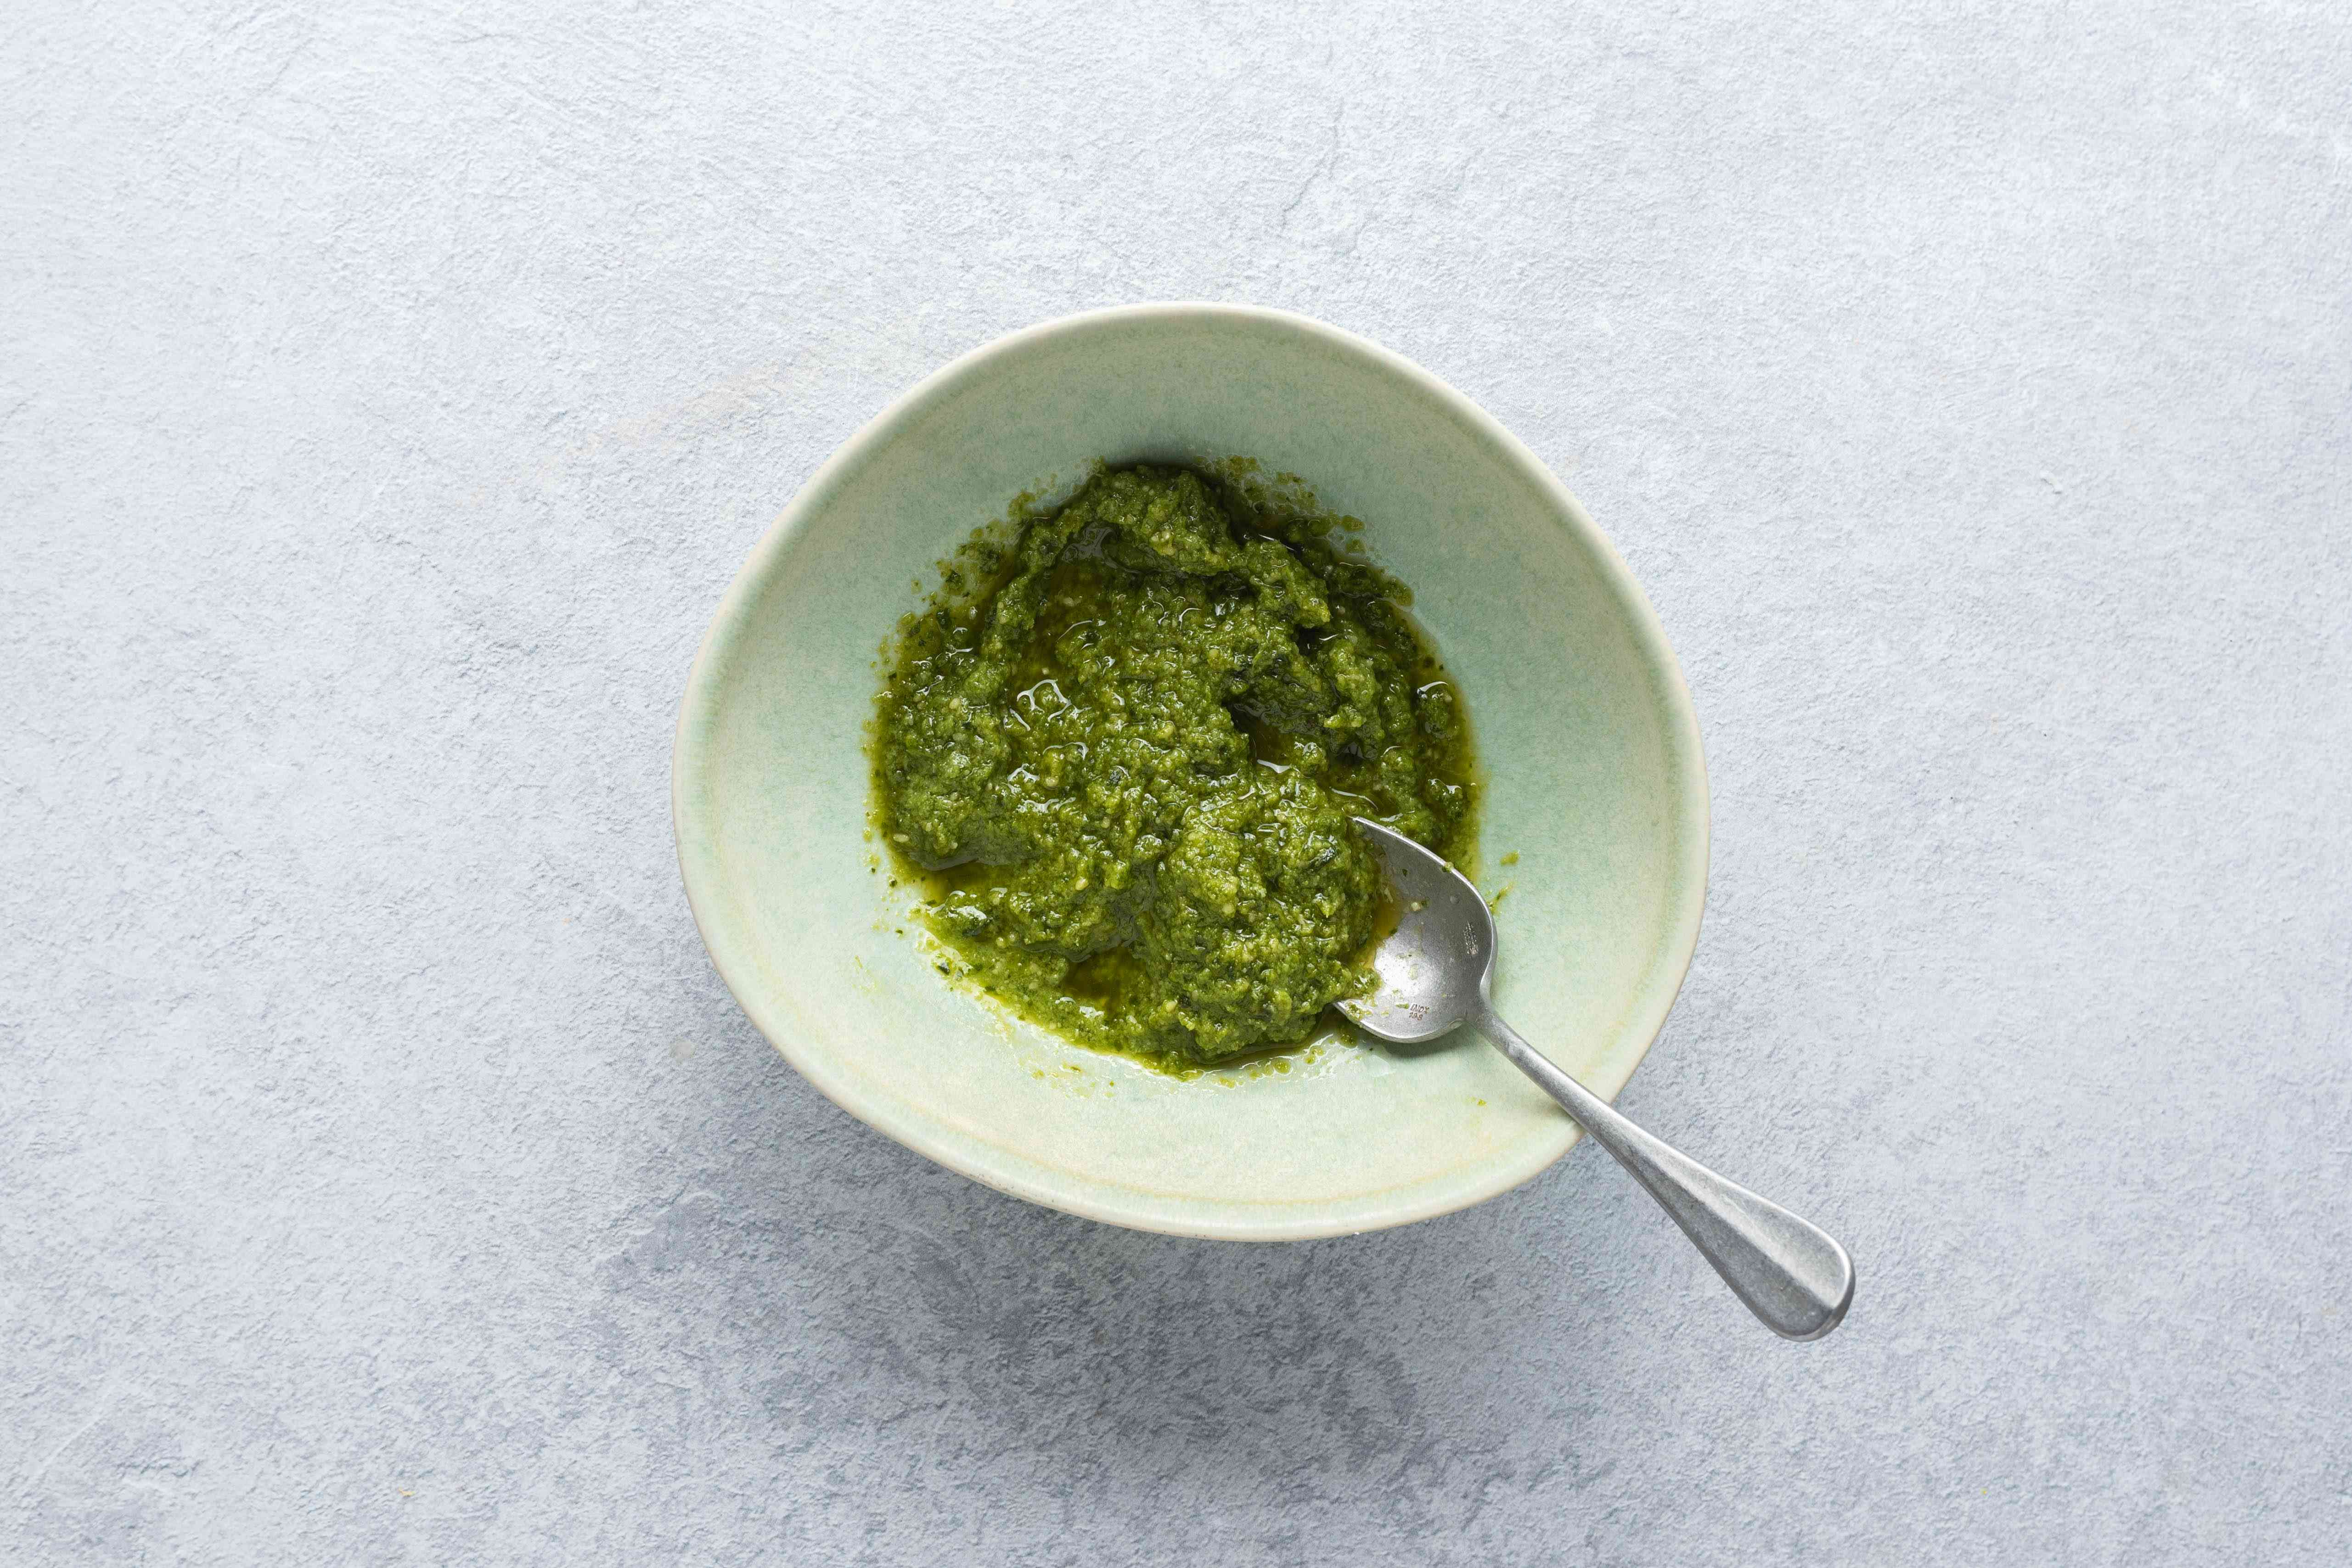 pesto with lemon juice in a bowl